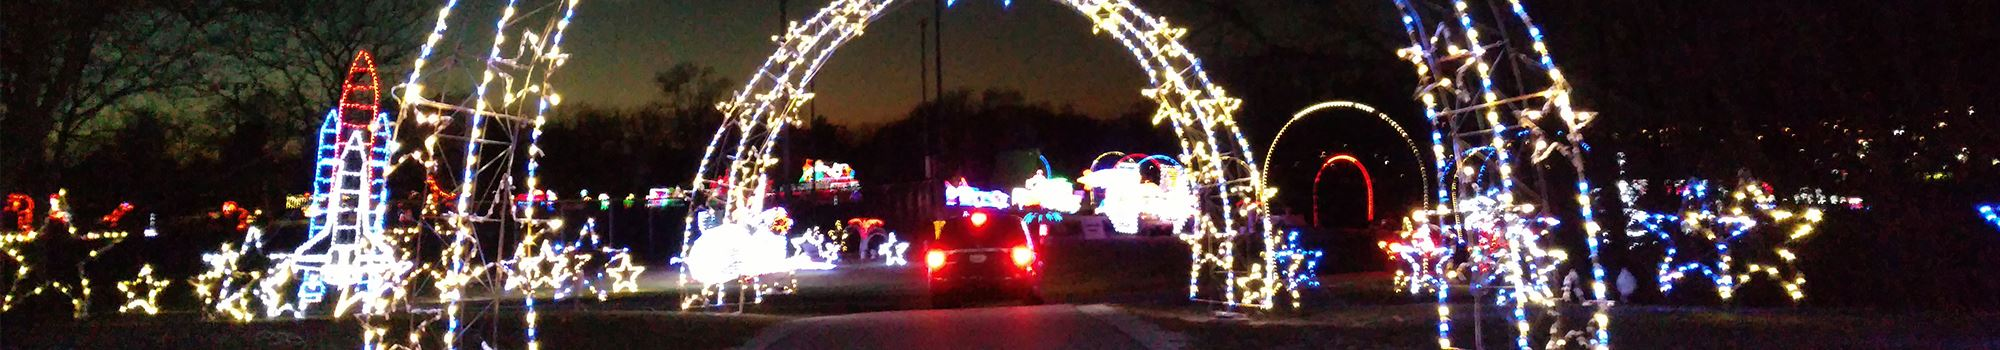 2020 Christmas Events Galesburg Il Festival of Lights | East Peoria, IL